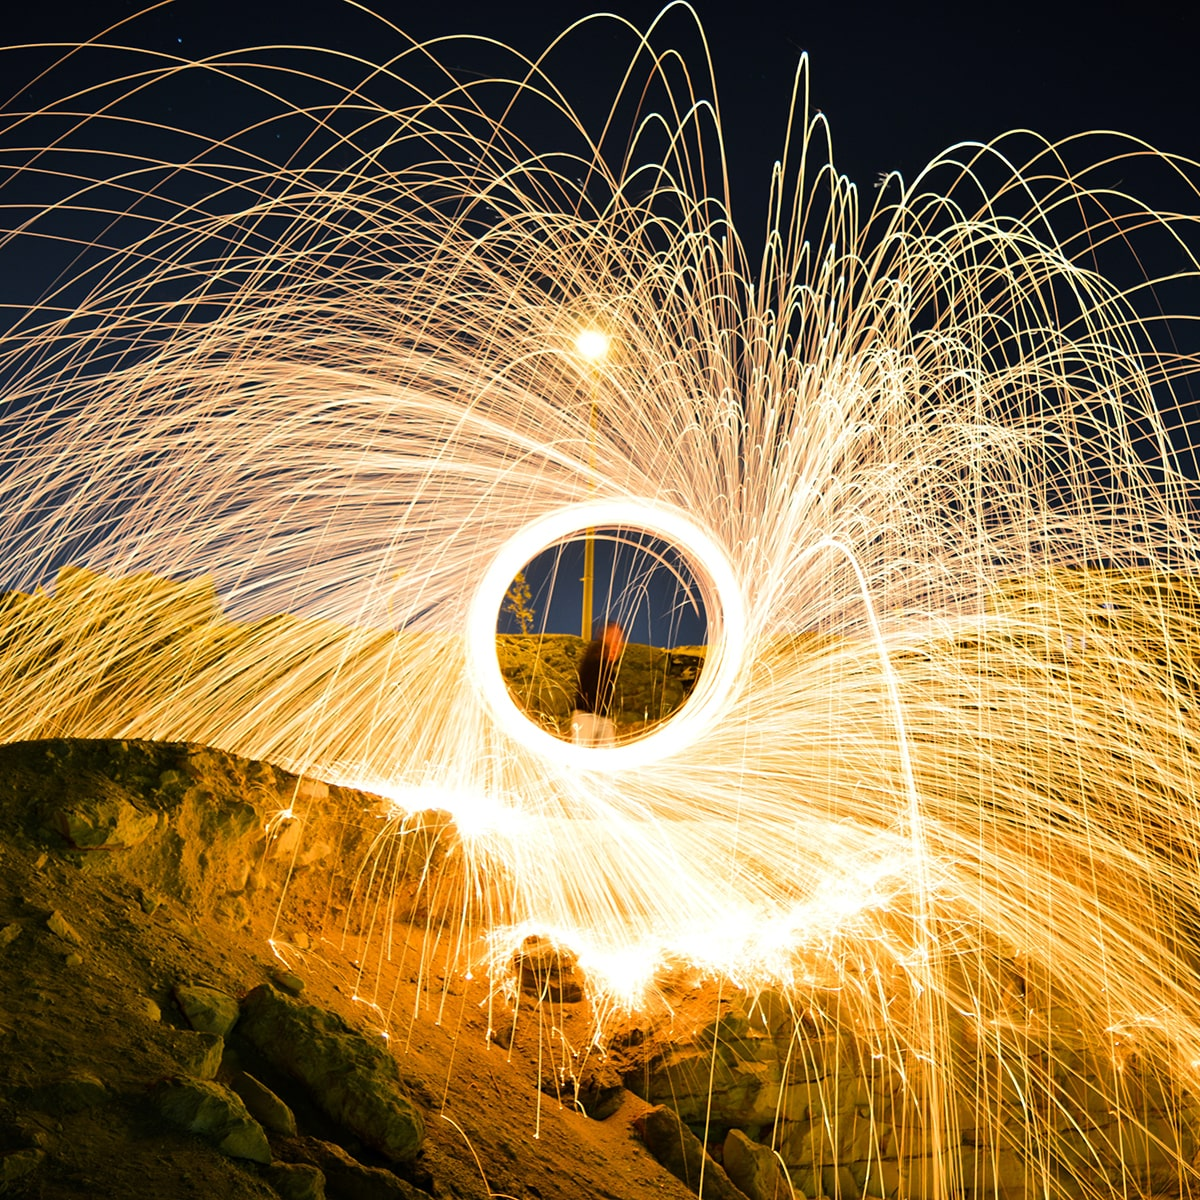 An Image Edited in Photoshop to Add Sparks